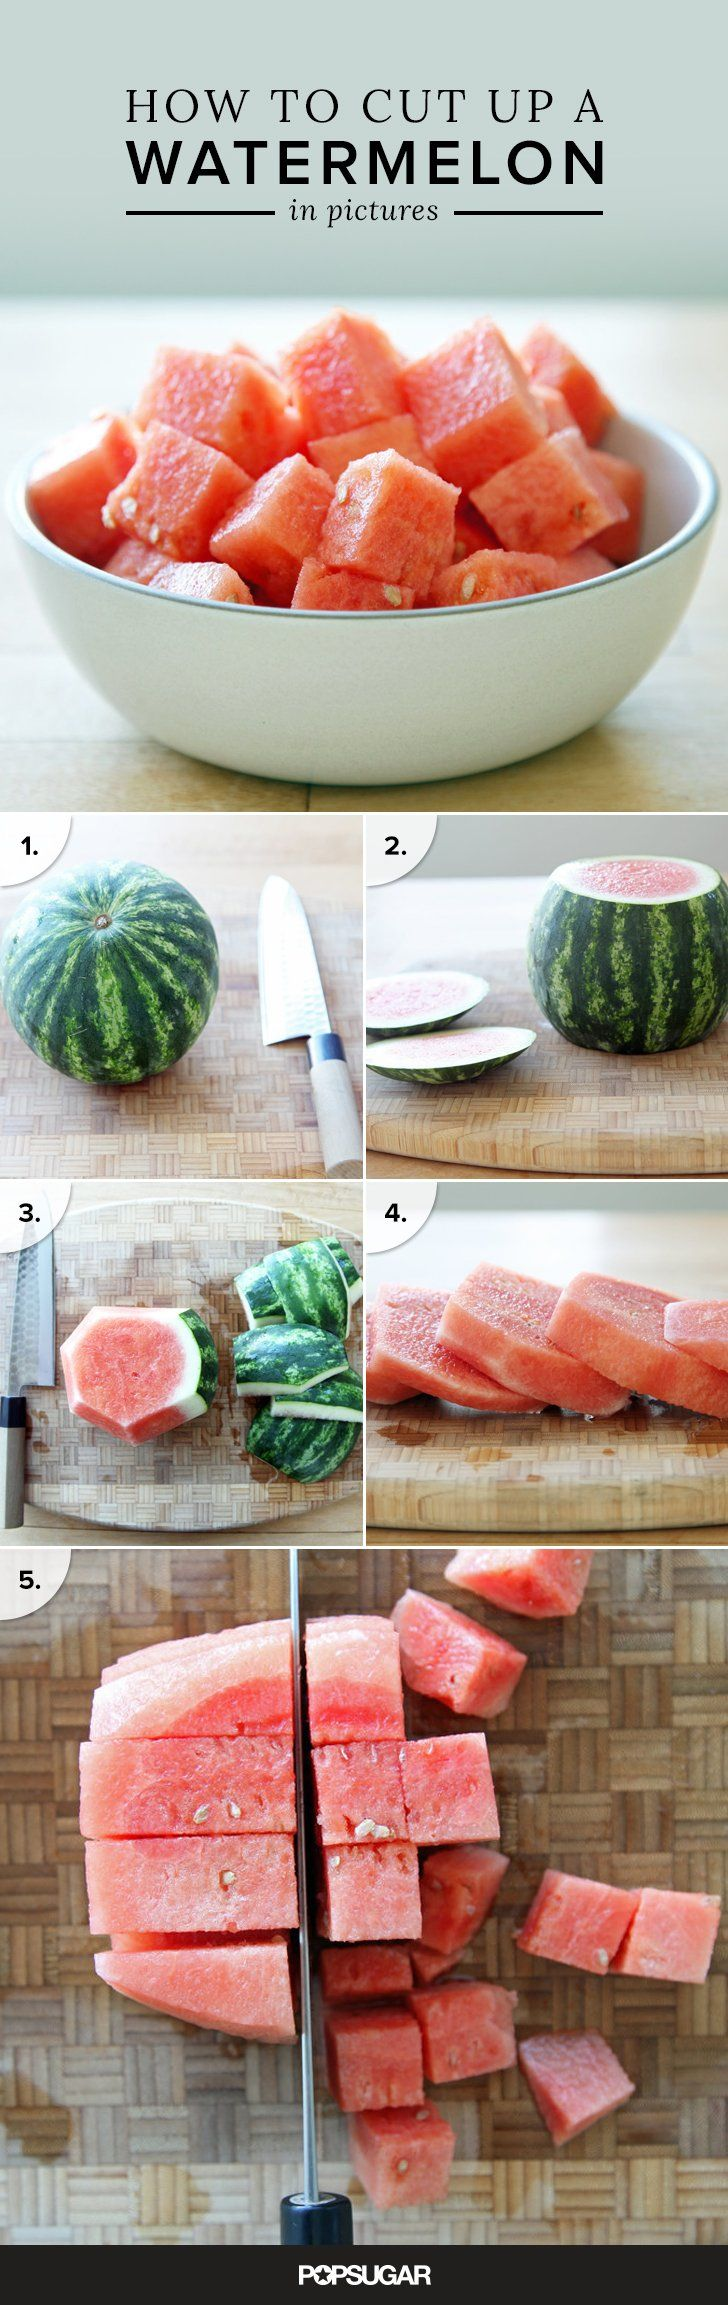 How to Cut a Watermelon Into Cubes | POPSUGAR UK Food